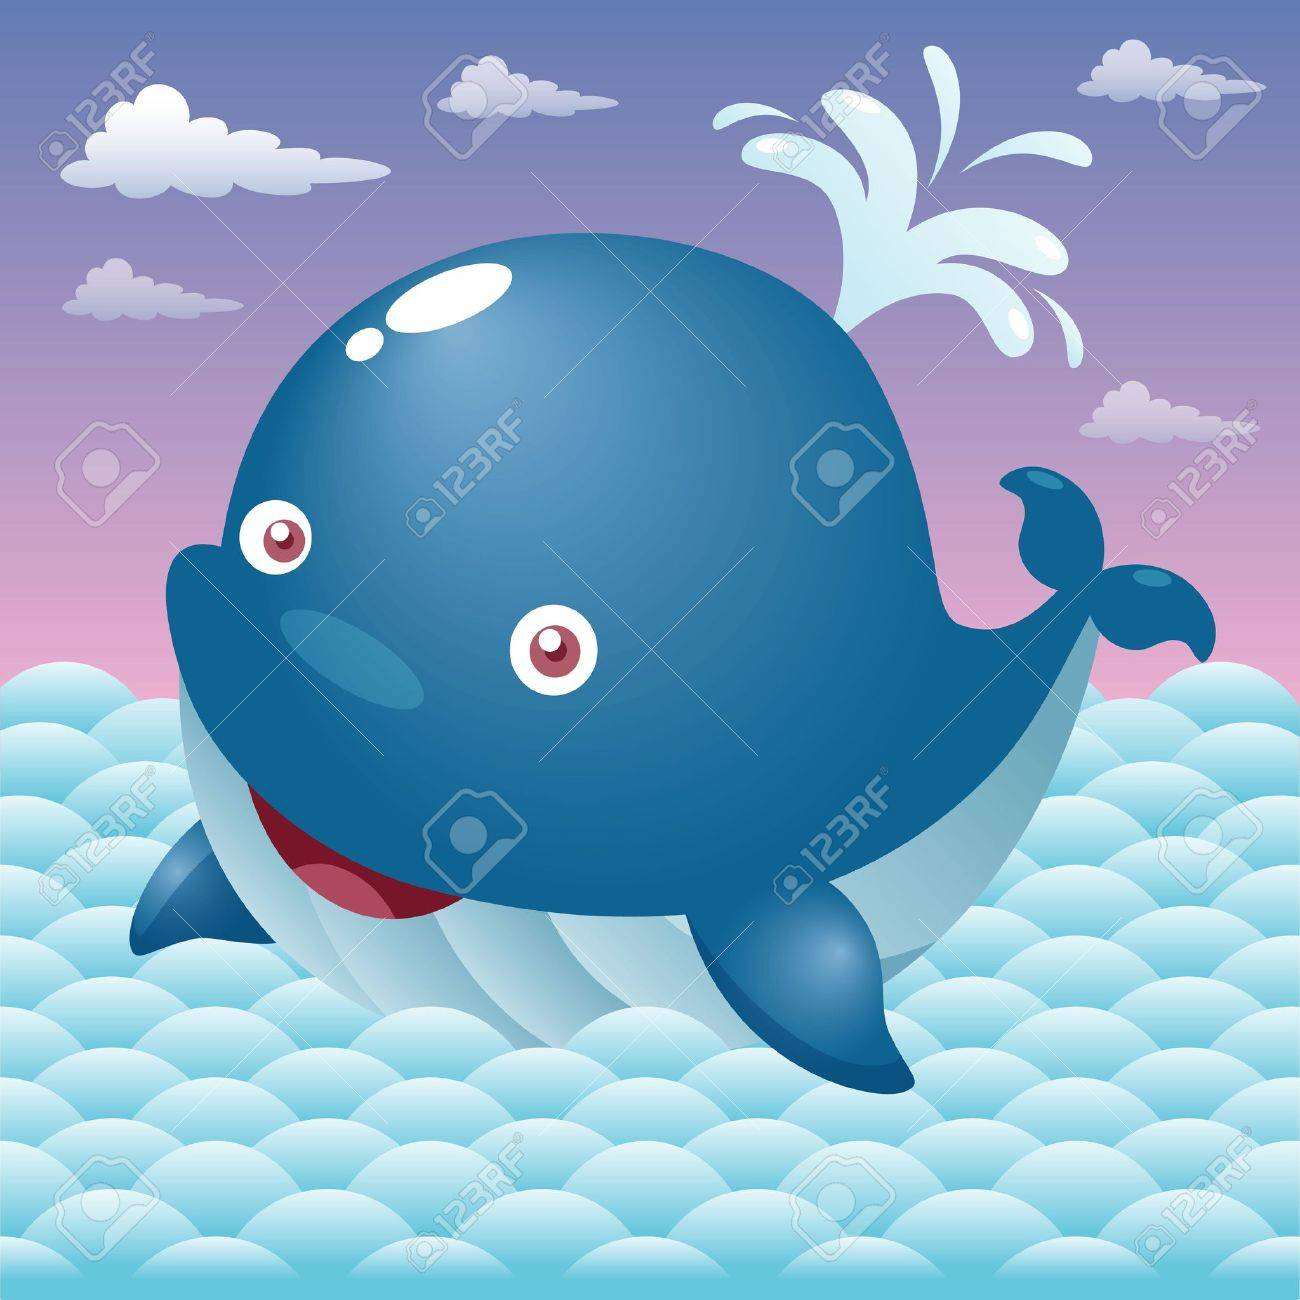 Cute whale in water cartoon isolated illustration stock photography - Illustration Of A Cute Cartoon Whale Stock Vector 15904577